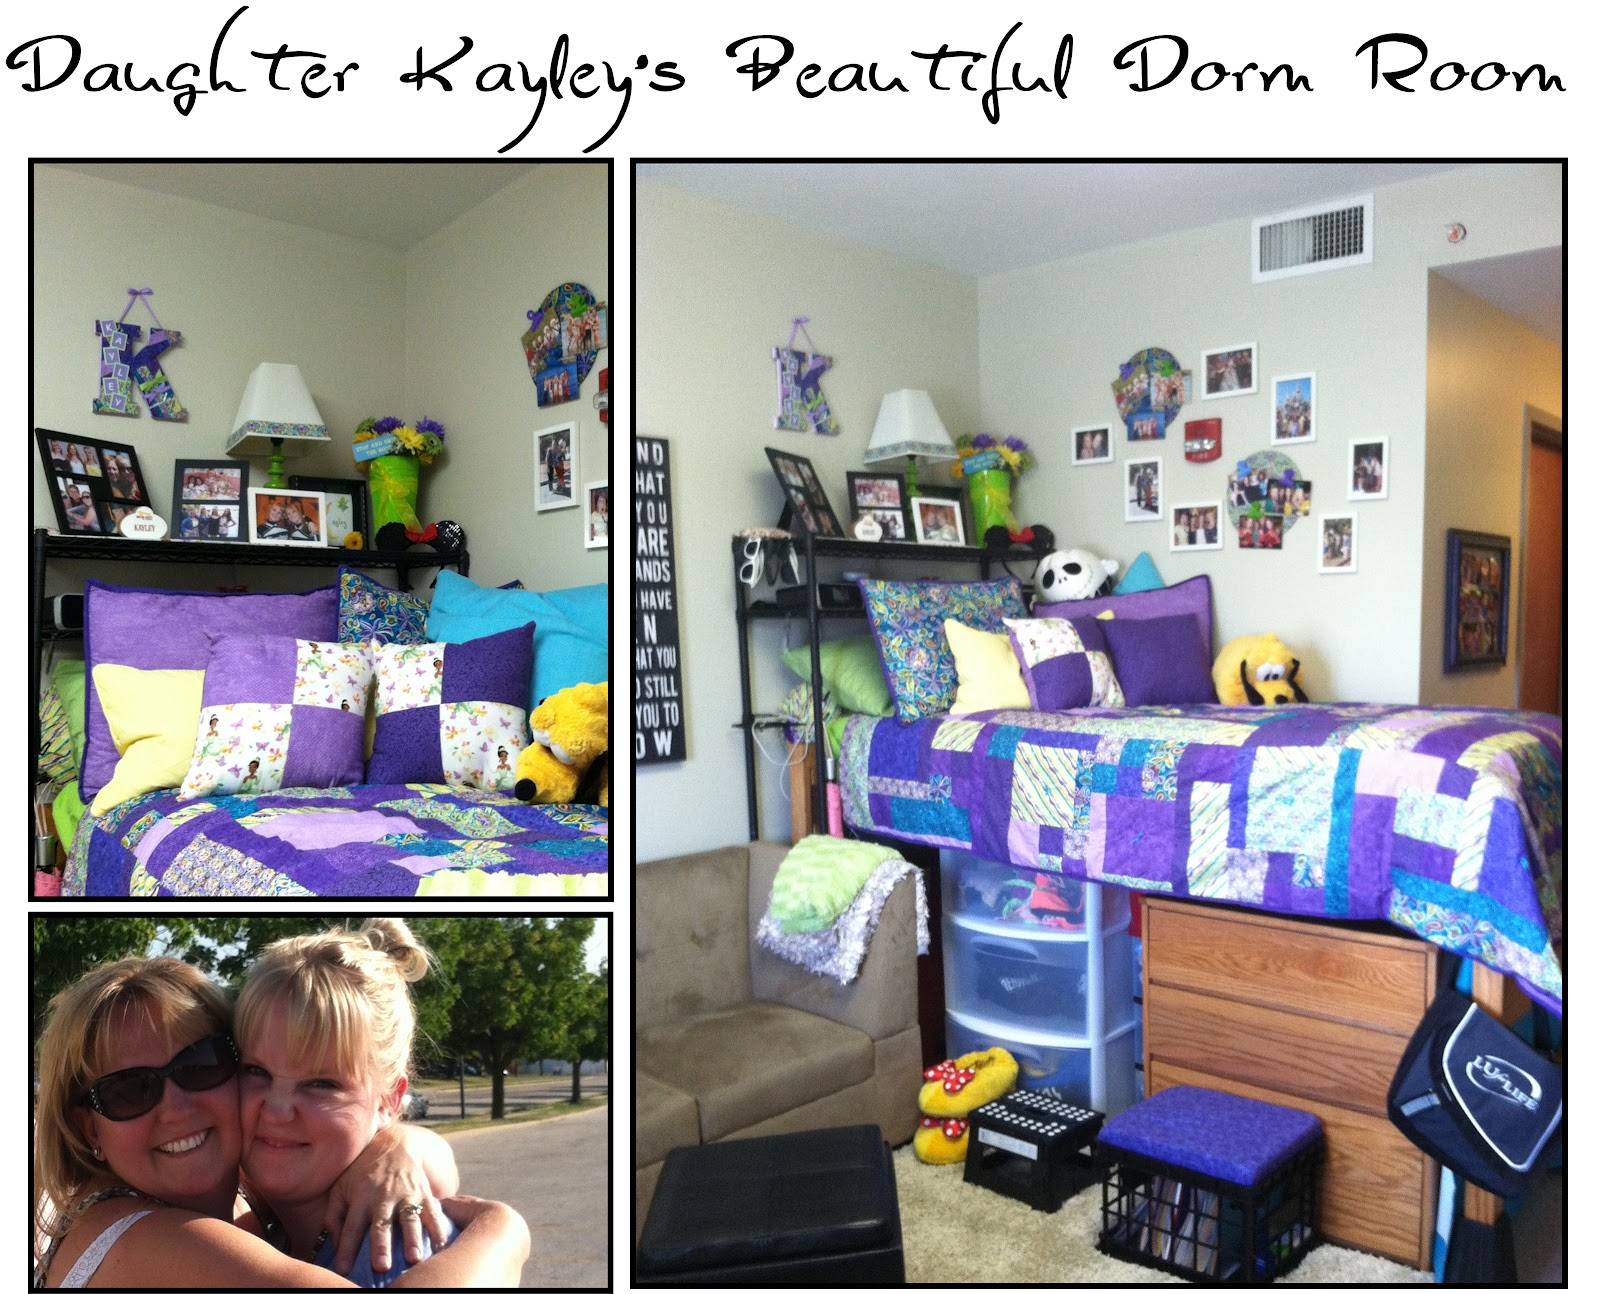 Decorating Ideas > MOMS CRAZY COOKING Pineapple Banana Smoothie {SweetN Low} ~ 121532_Crazy Dorm Room Decorating Ideas